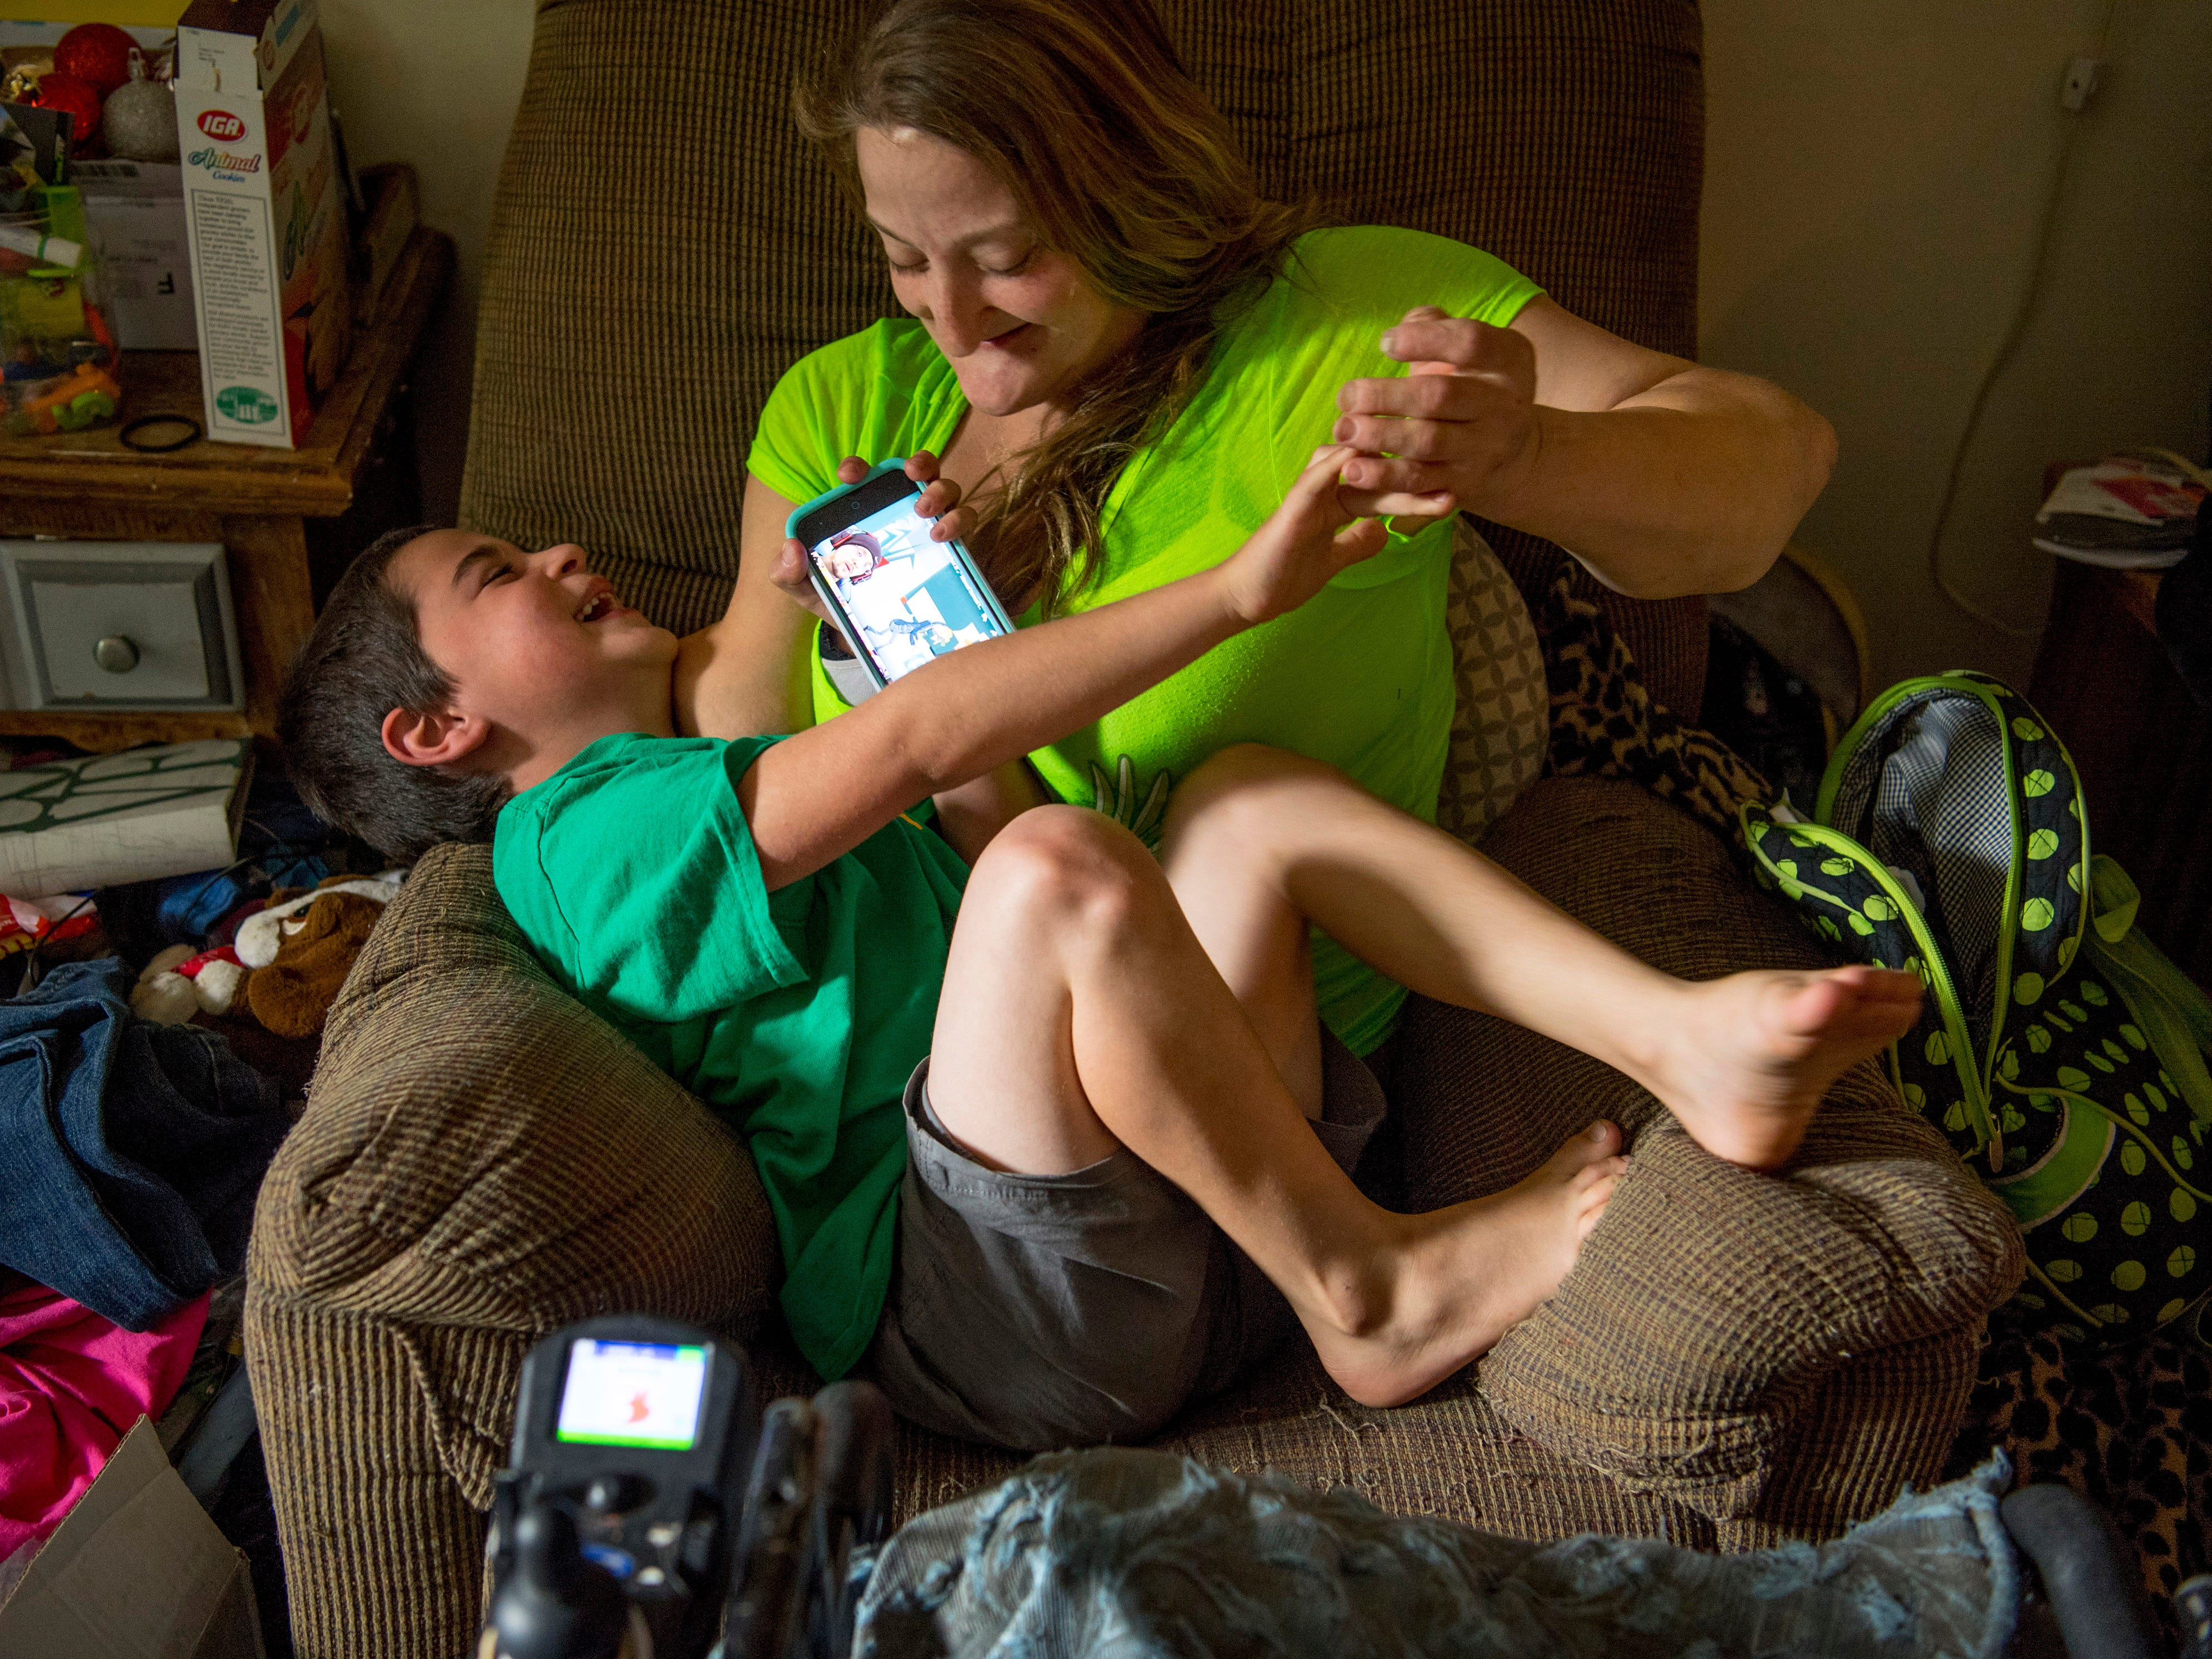 A tickle fight breaks out between Leland, 6, and Amanda as he tries to watch videos on her cell phone.